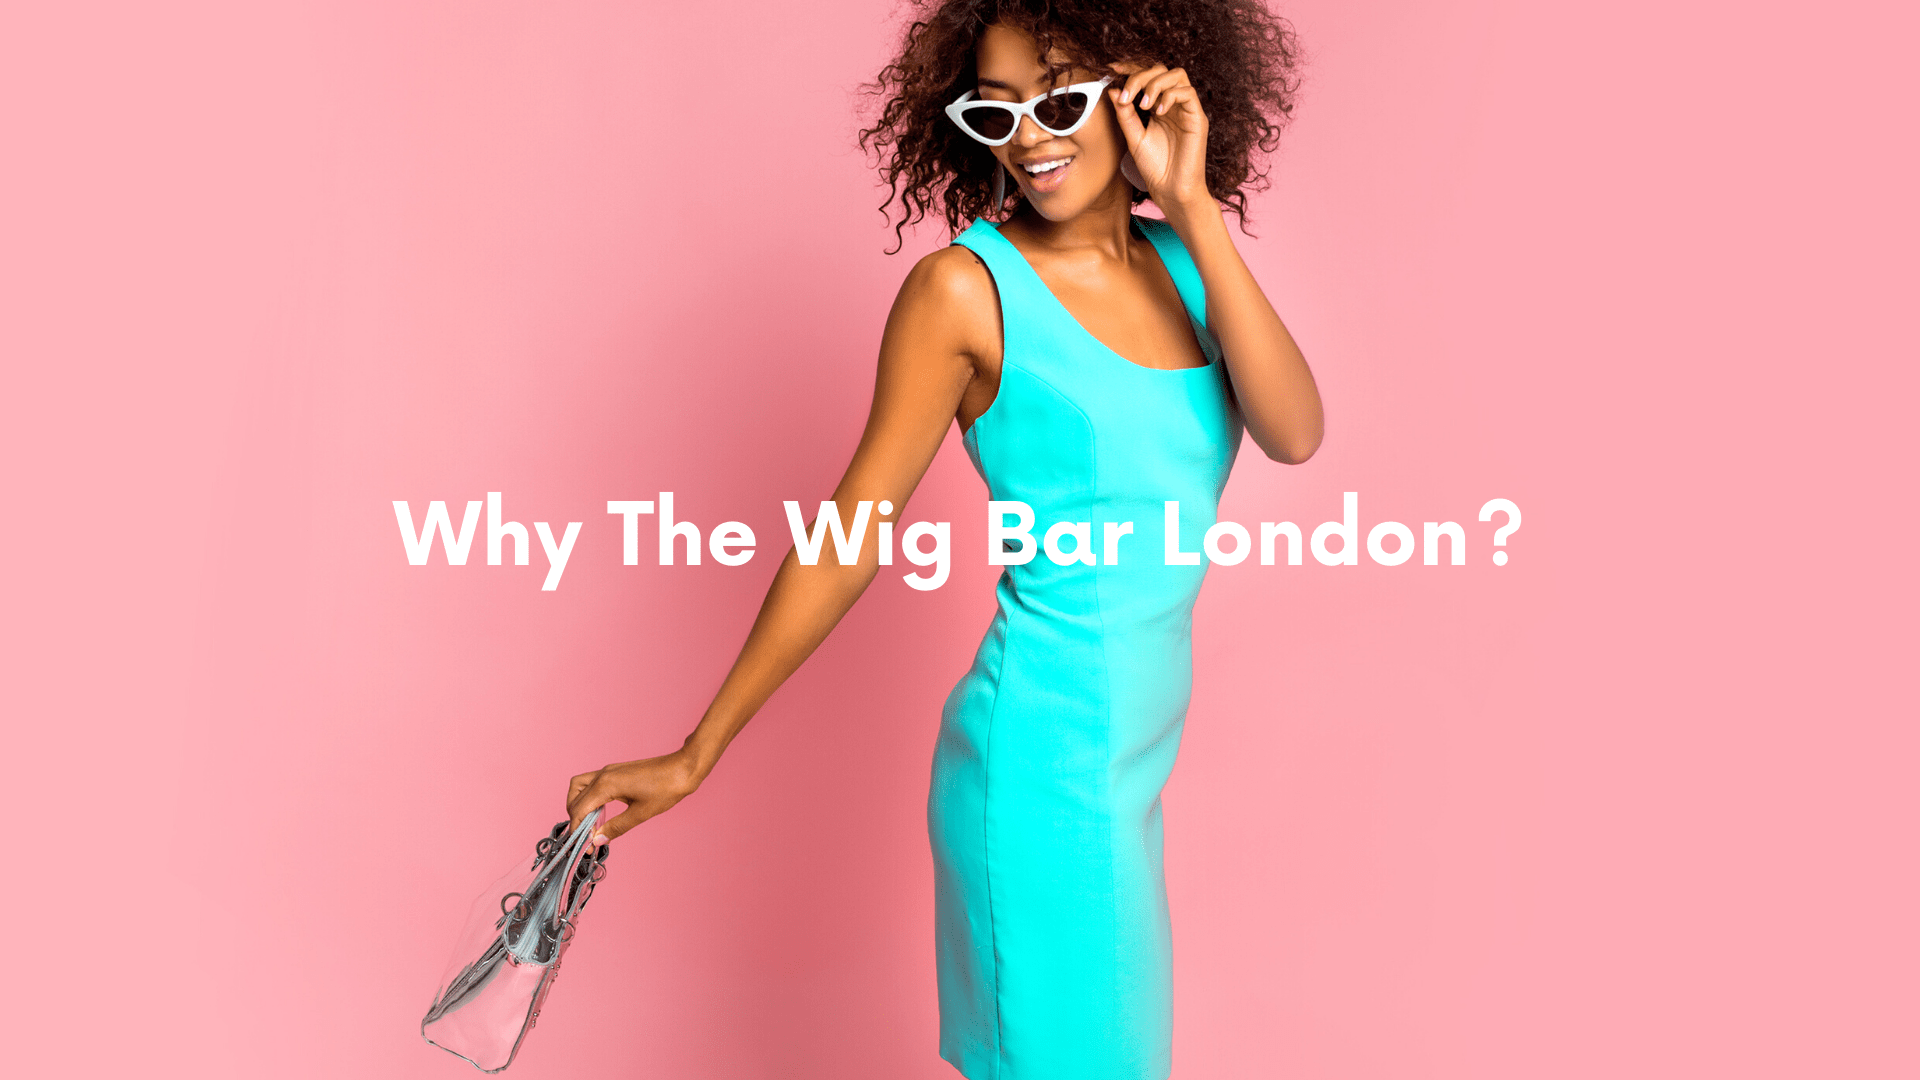 Why the wig bar london?